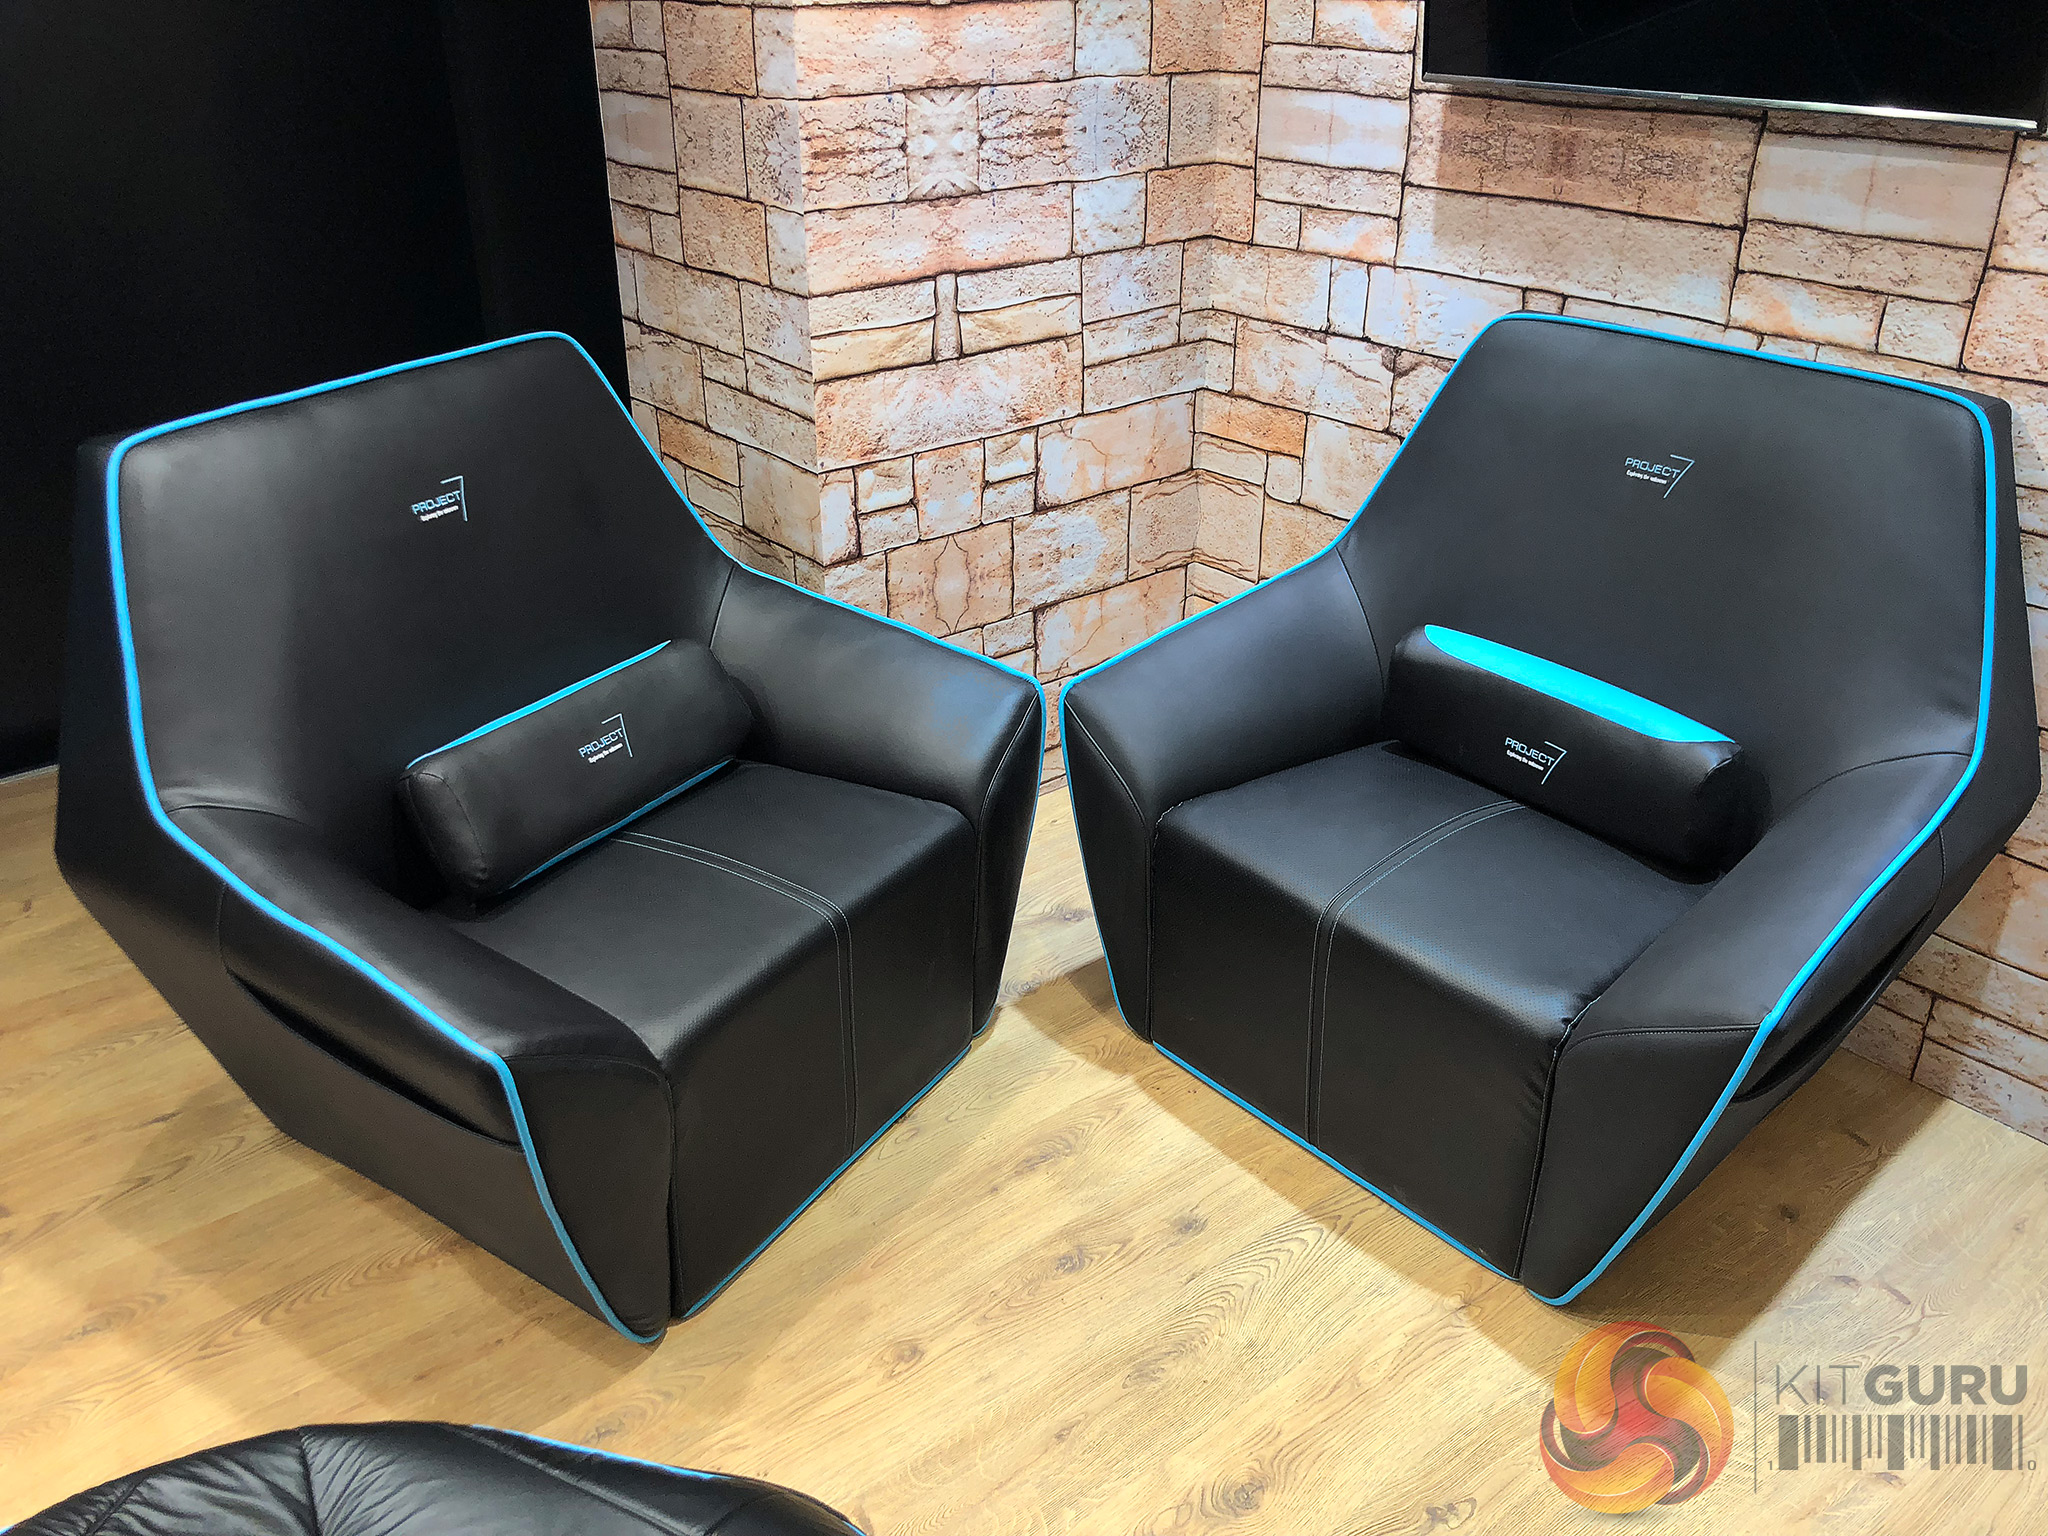 how much does a gaming chair weigh plastic deck chairs australia aerocool soft project 7 lounge furniture for gamers kitguru